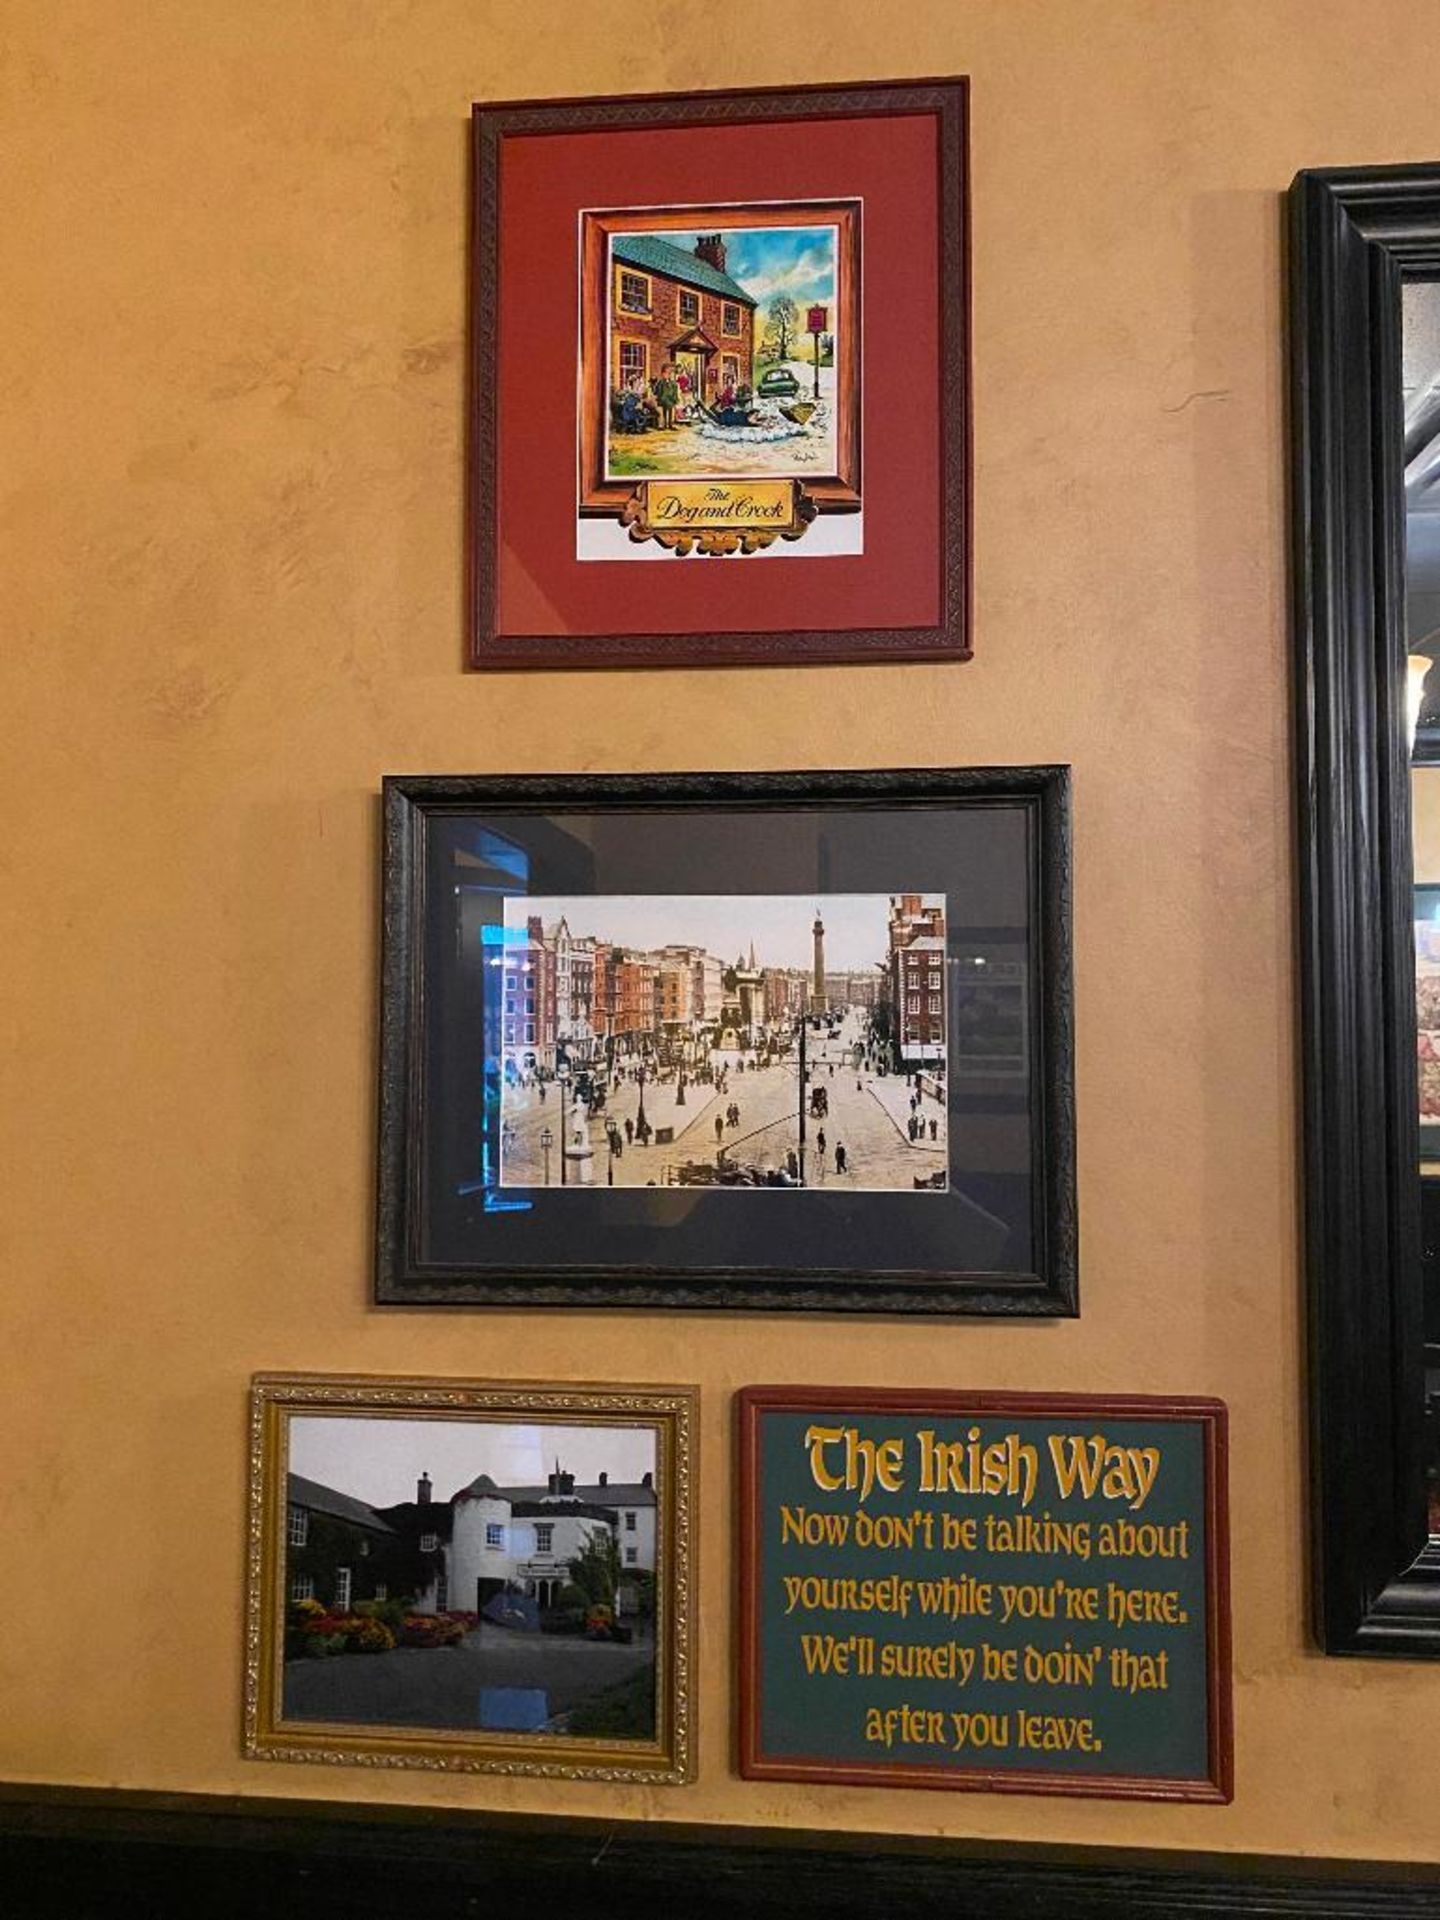 LOT OF (8) FRAMED MEMORABILIA PHOTOS & (1) JOHN'S LANE DISTILLERY MIRROR - NOTE: REQUIRES REMOVAL FR - Image 5 of 6